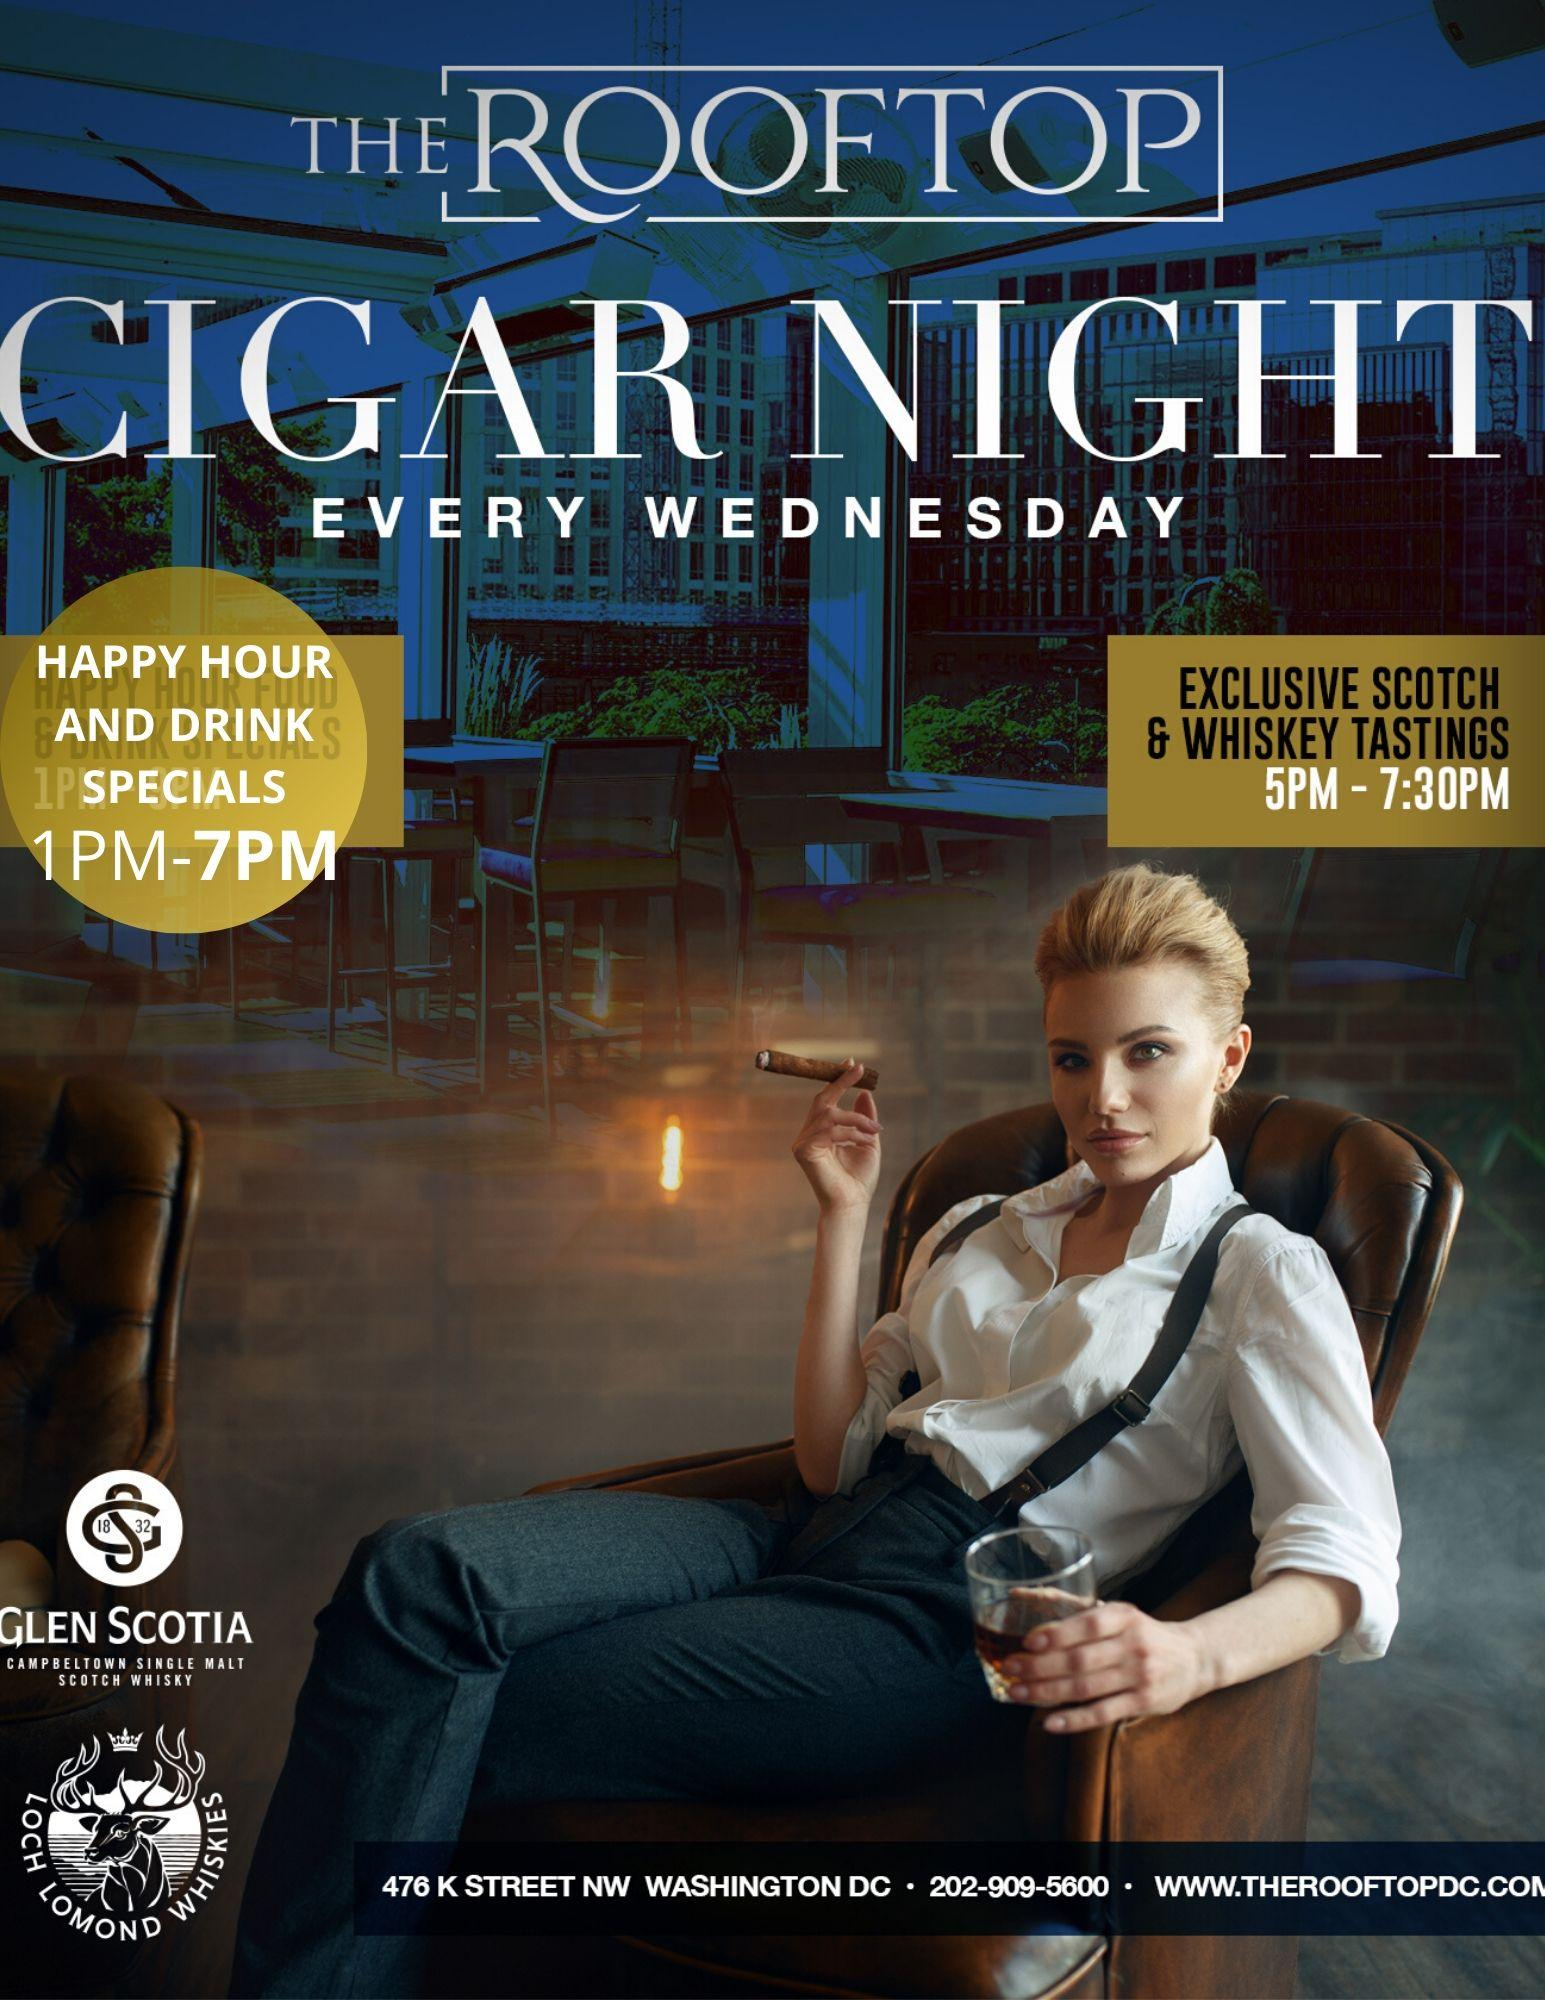 Cigar & Alcohol Tasting Every Wednesday!